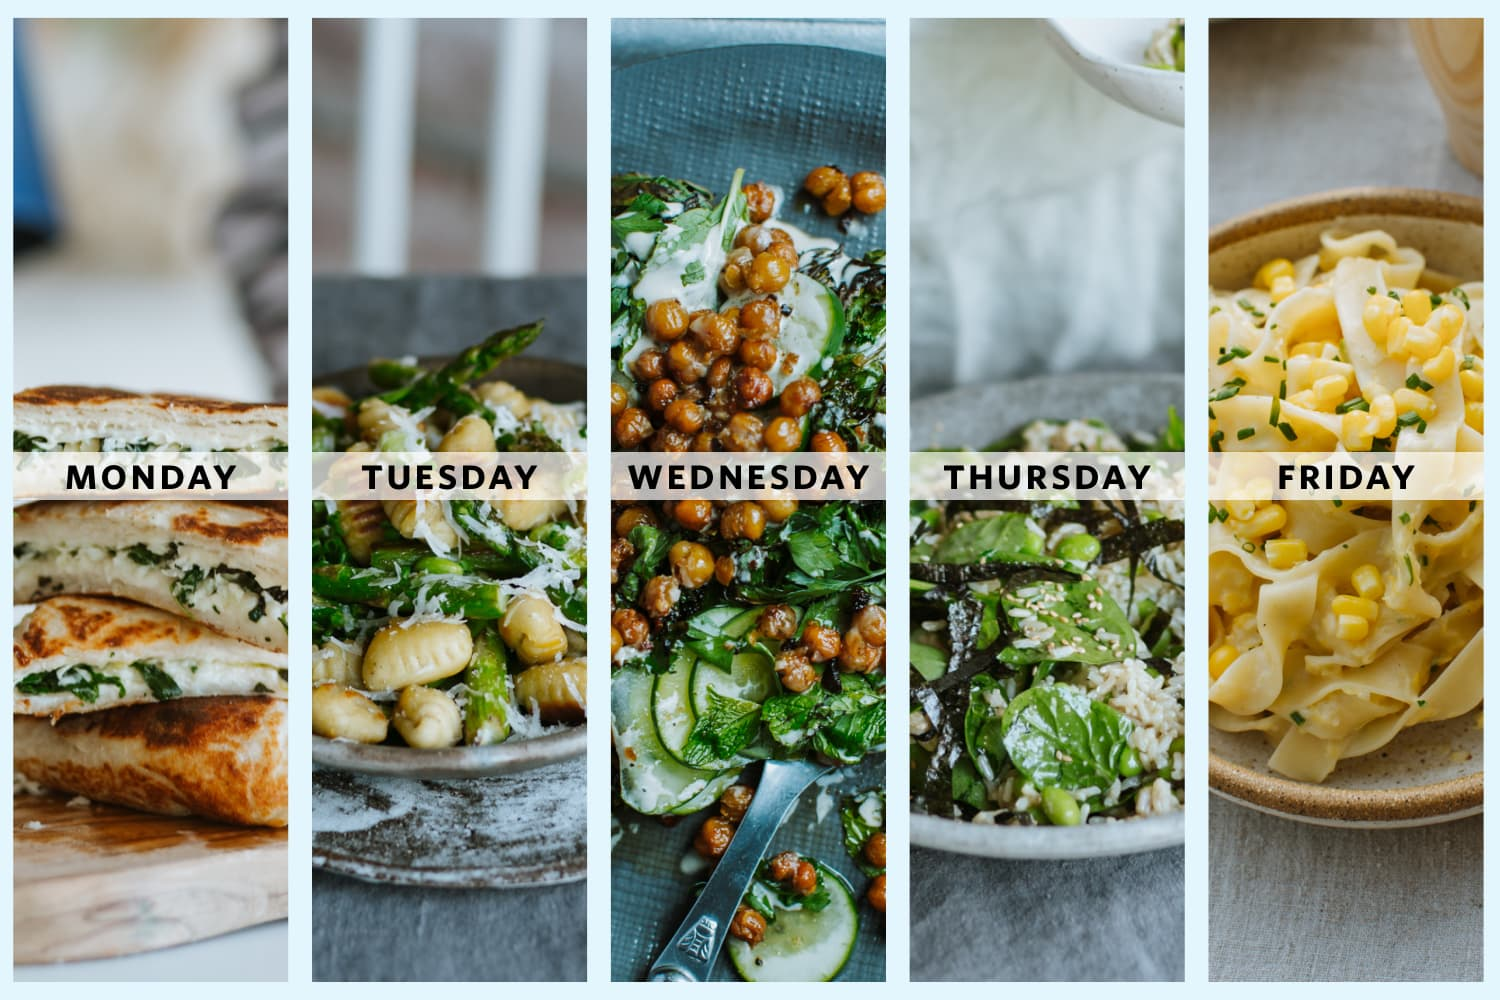 5 Unique, Unexpected Dinners That Will Make You Excited to Eat Vegetables